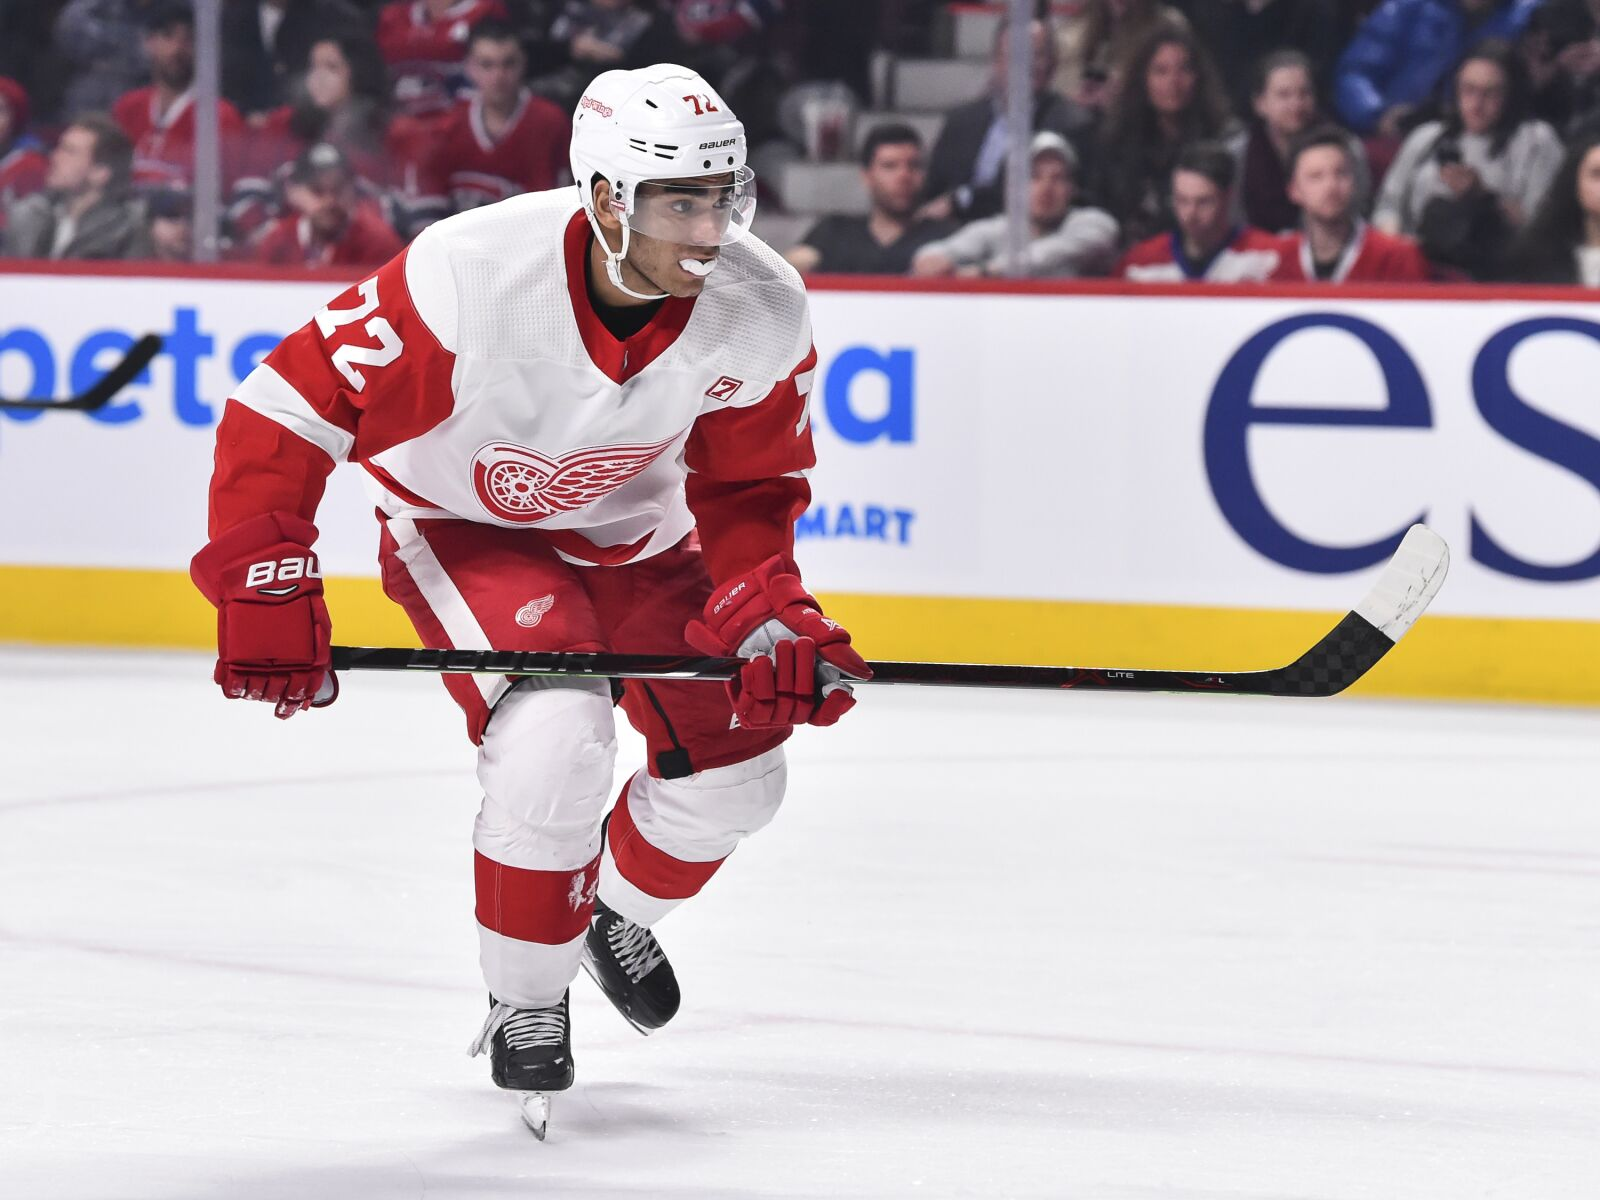 Detroit Red Wings: Reasons To Not Move A Top Forward This Season